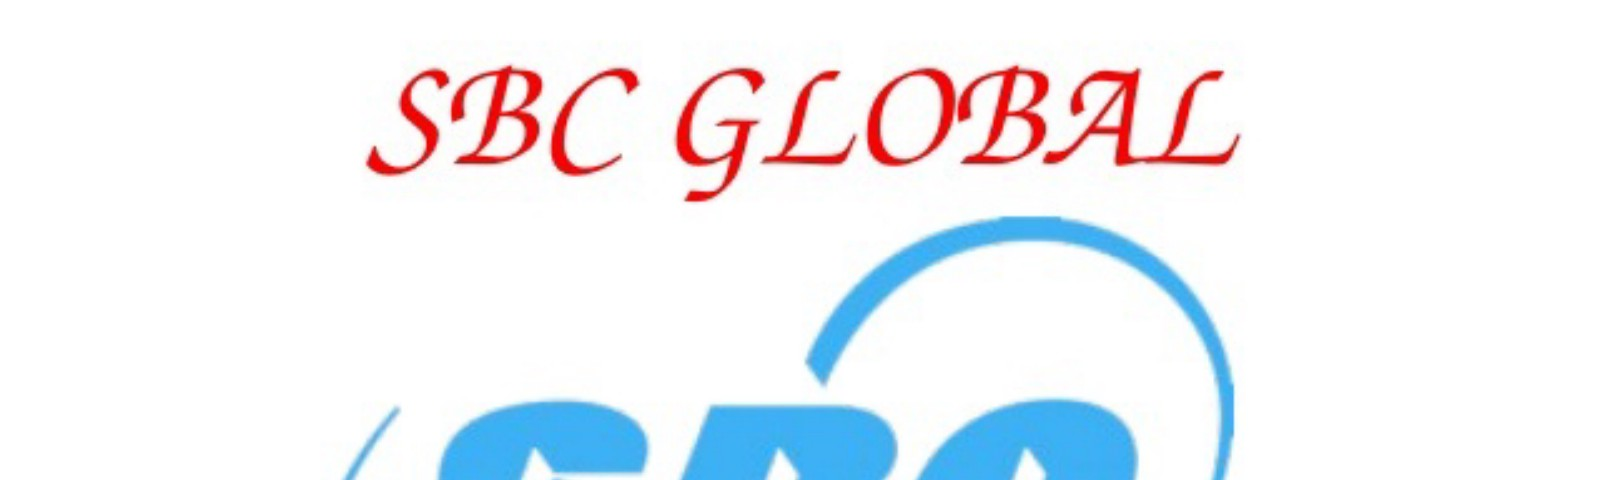 Latest Stories And News About Sbcglobal Emailsupport  U2013 Medium